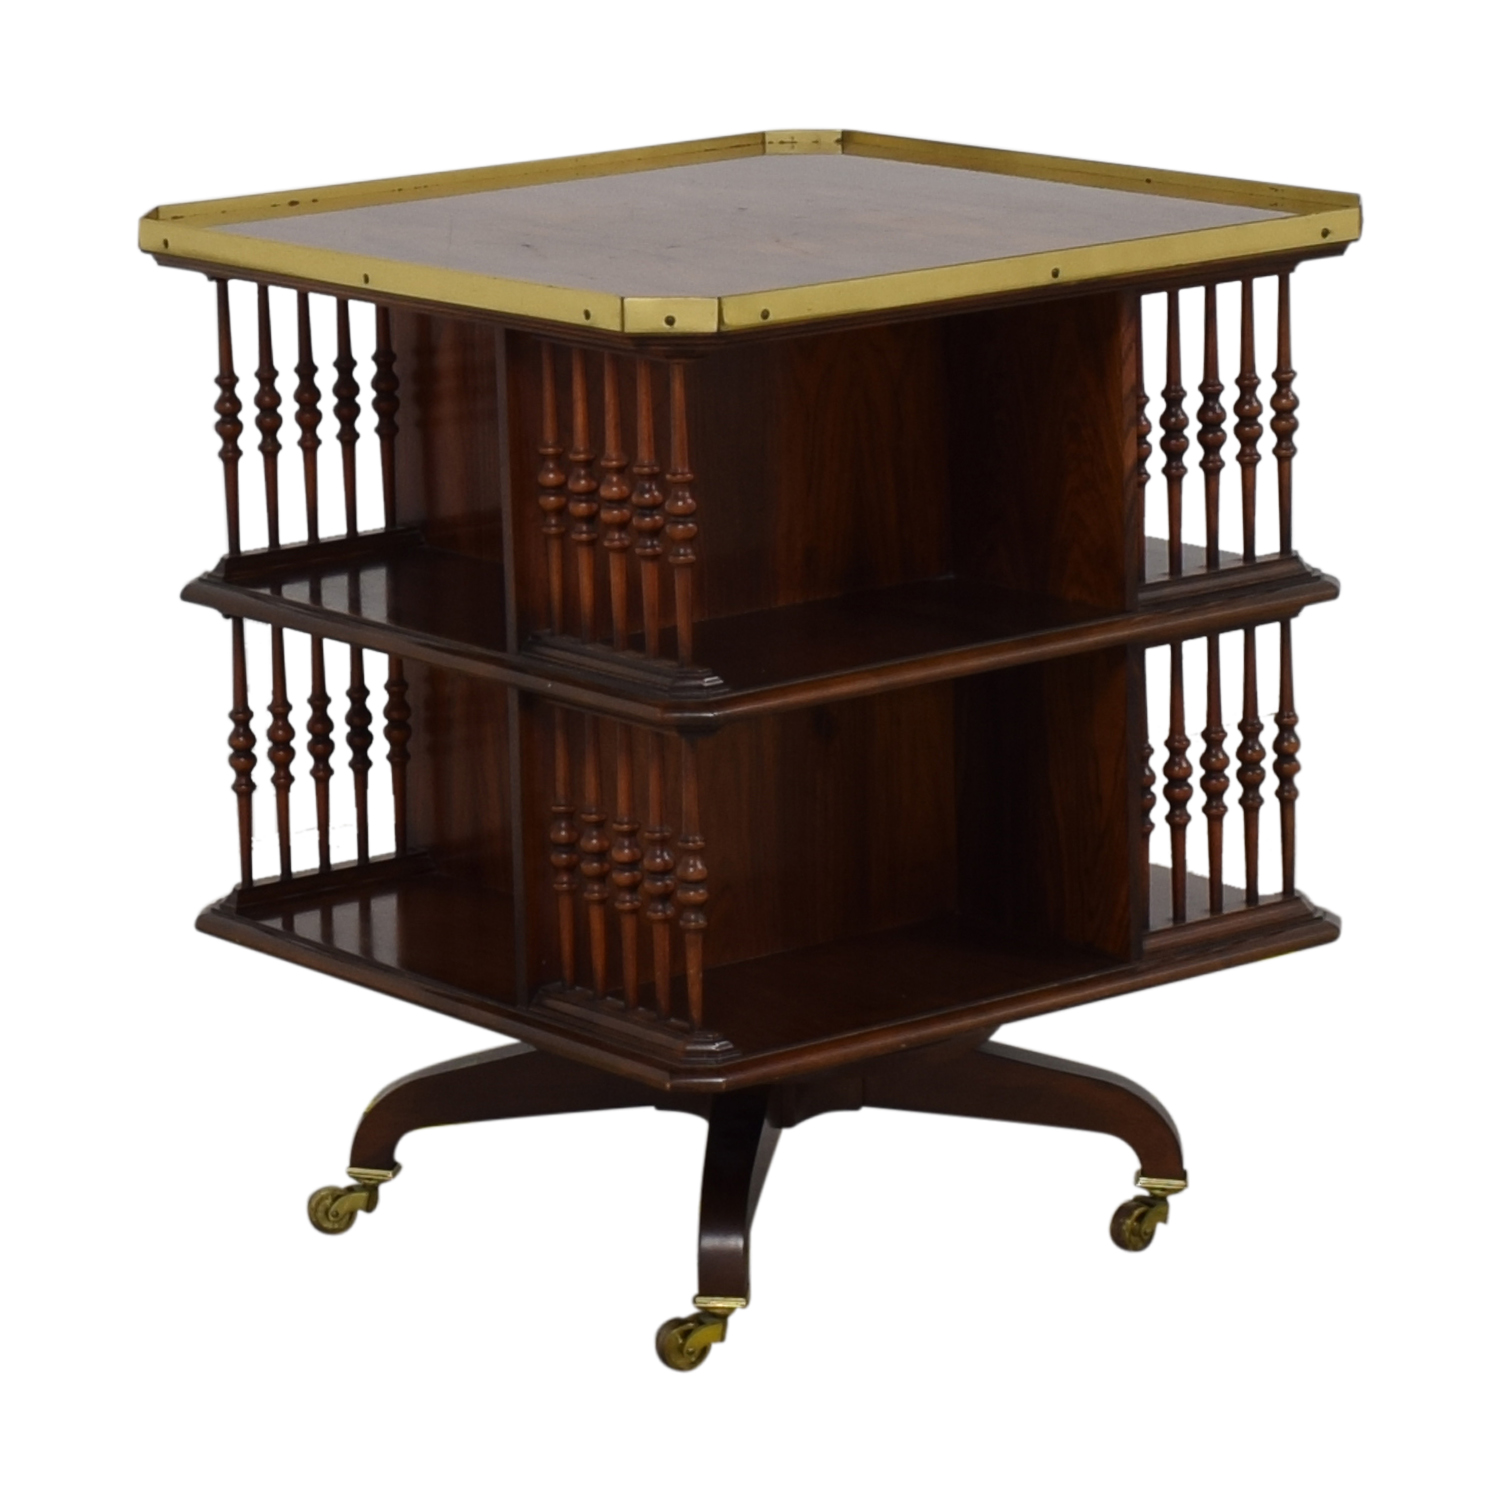 buy Baker Furniture Baker Furniture Swiveling Library Table online